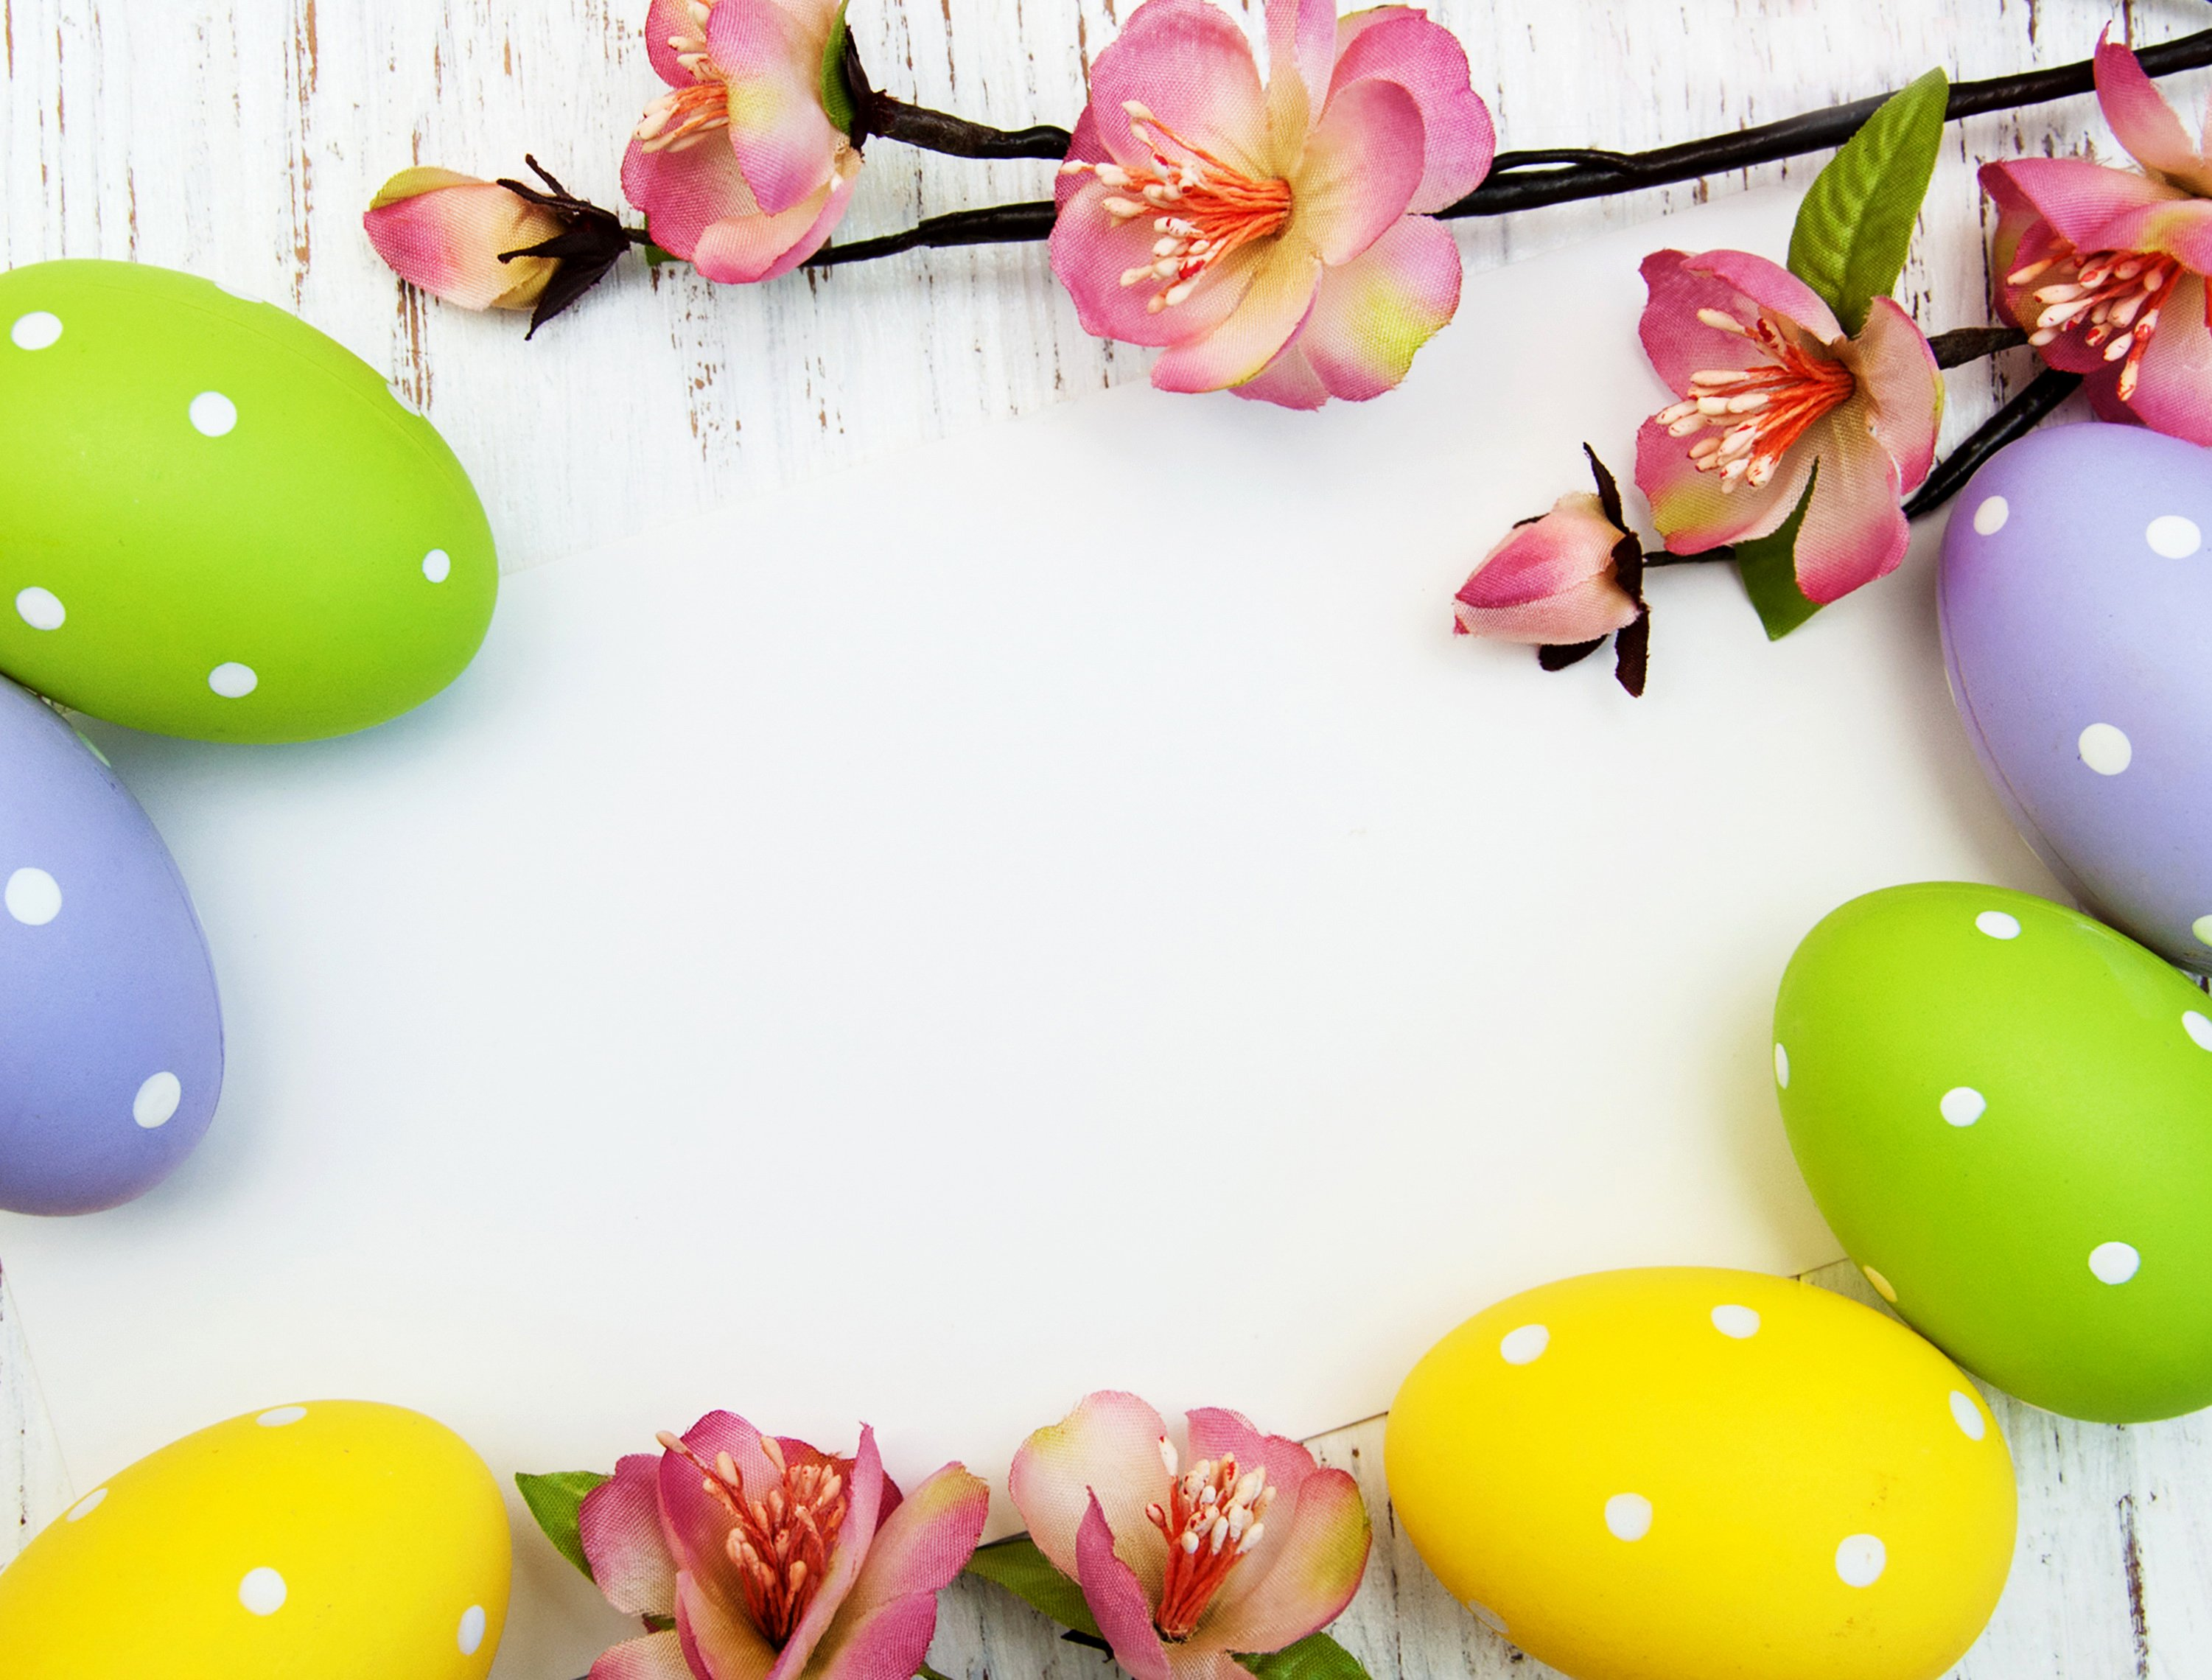 Easter Backgrounds Pictures HD Easter Images 3002x2280